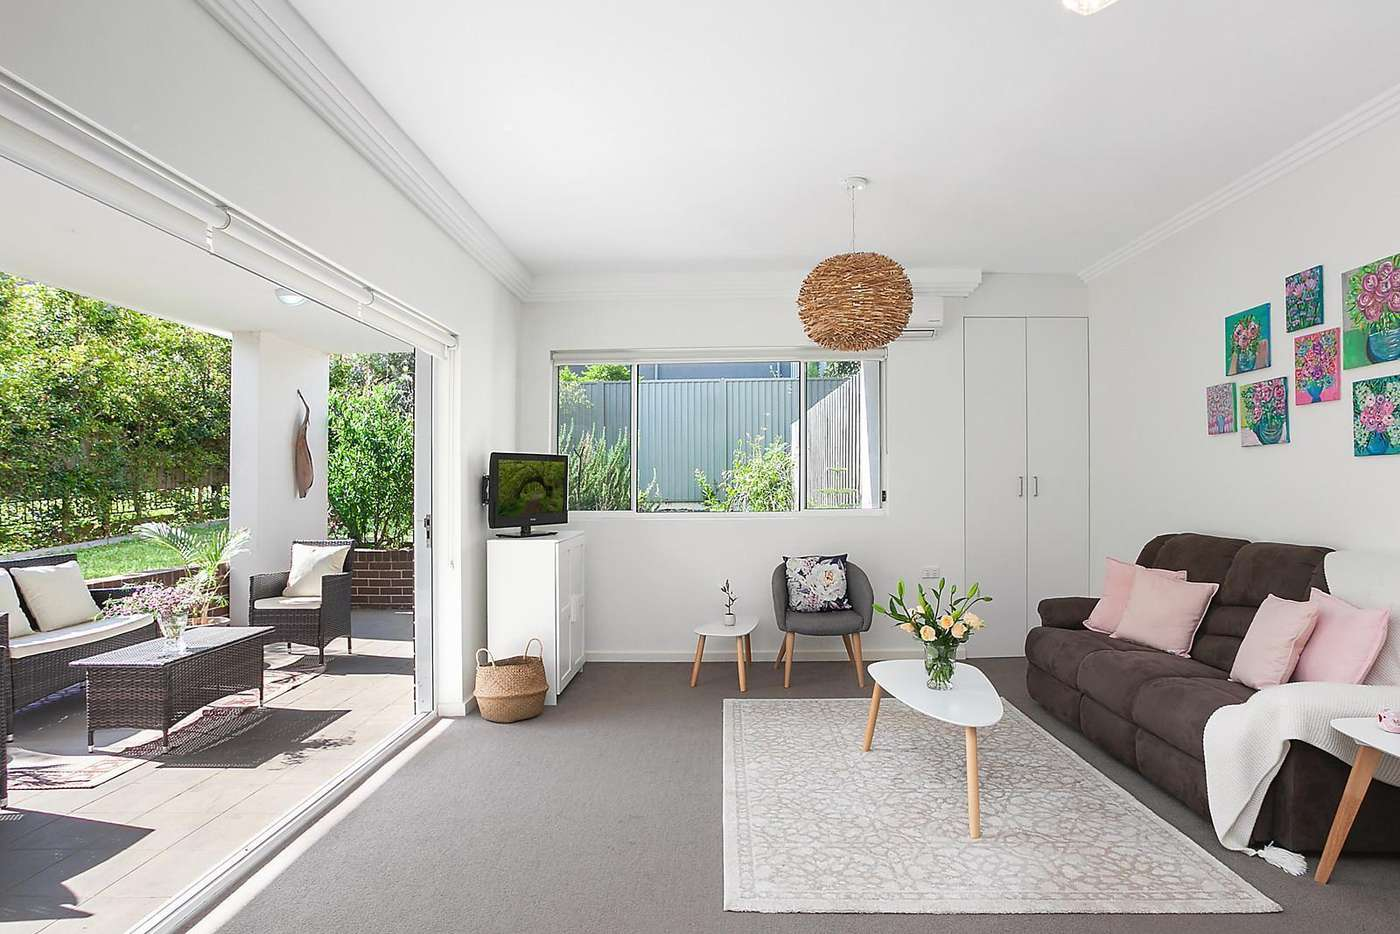 Main view of Homely apartment listing, 1/57 South Street, Rydalmere NSW 2116